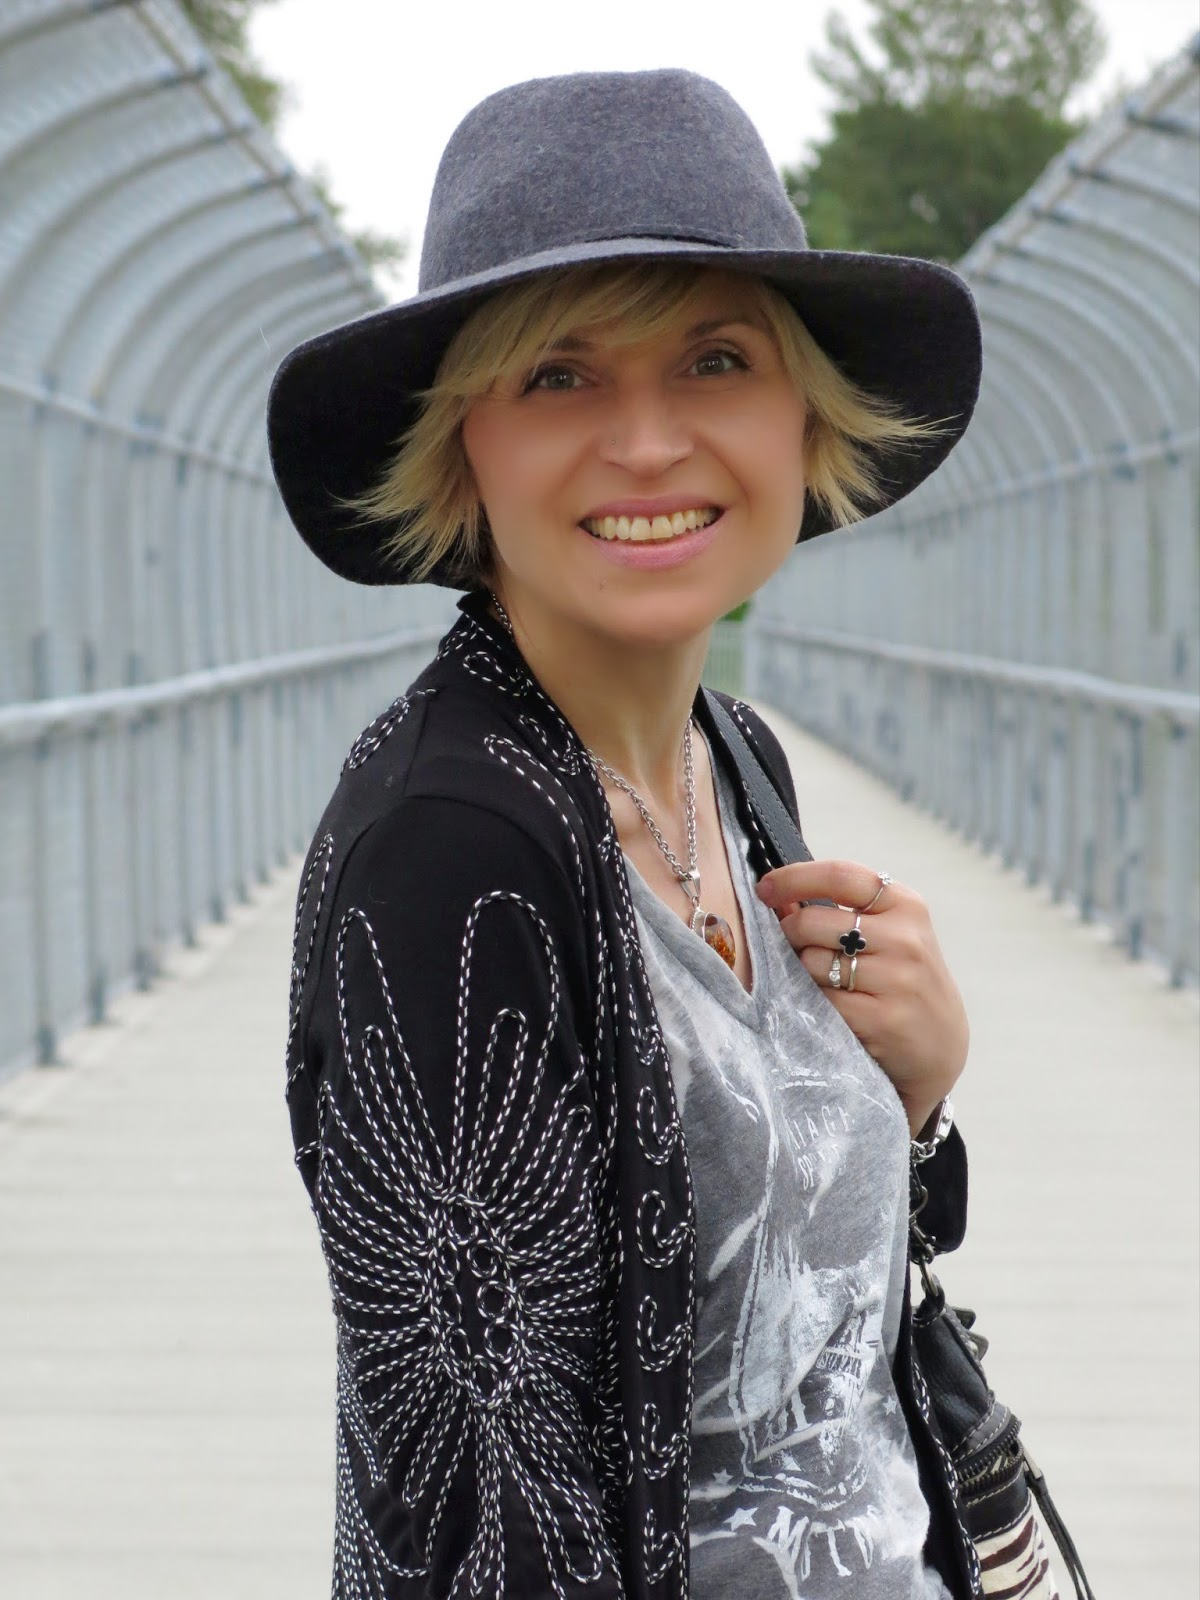 graphic tee, embroidered jacket, and floppy hat